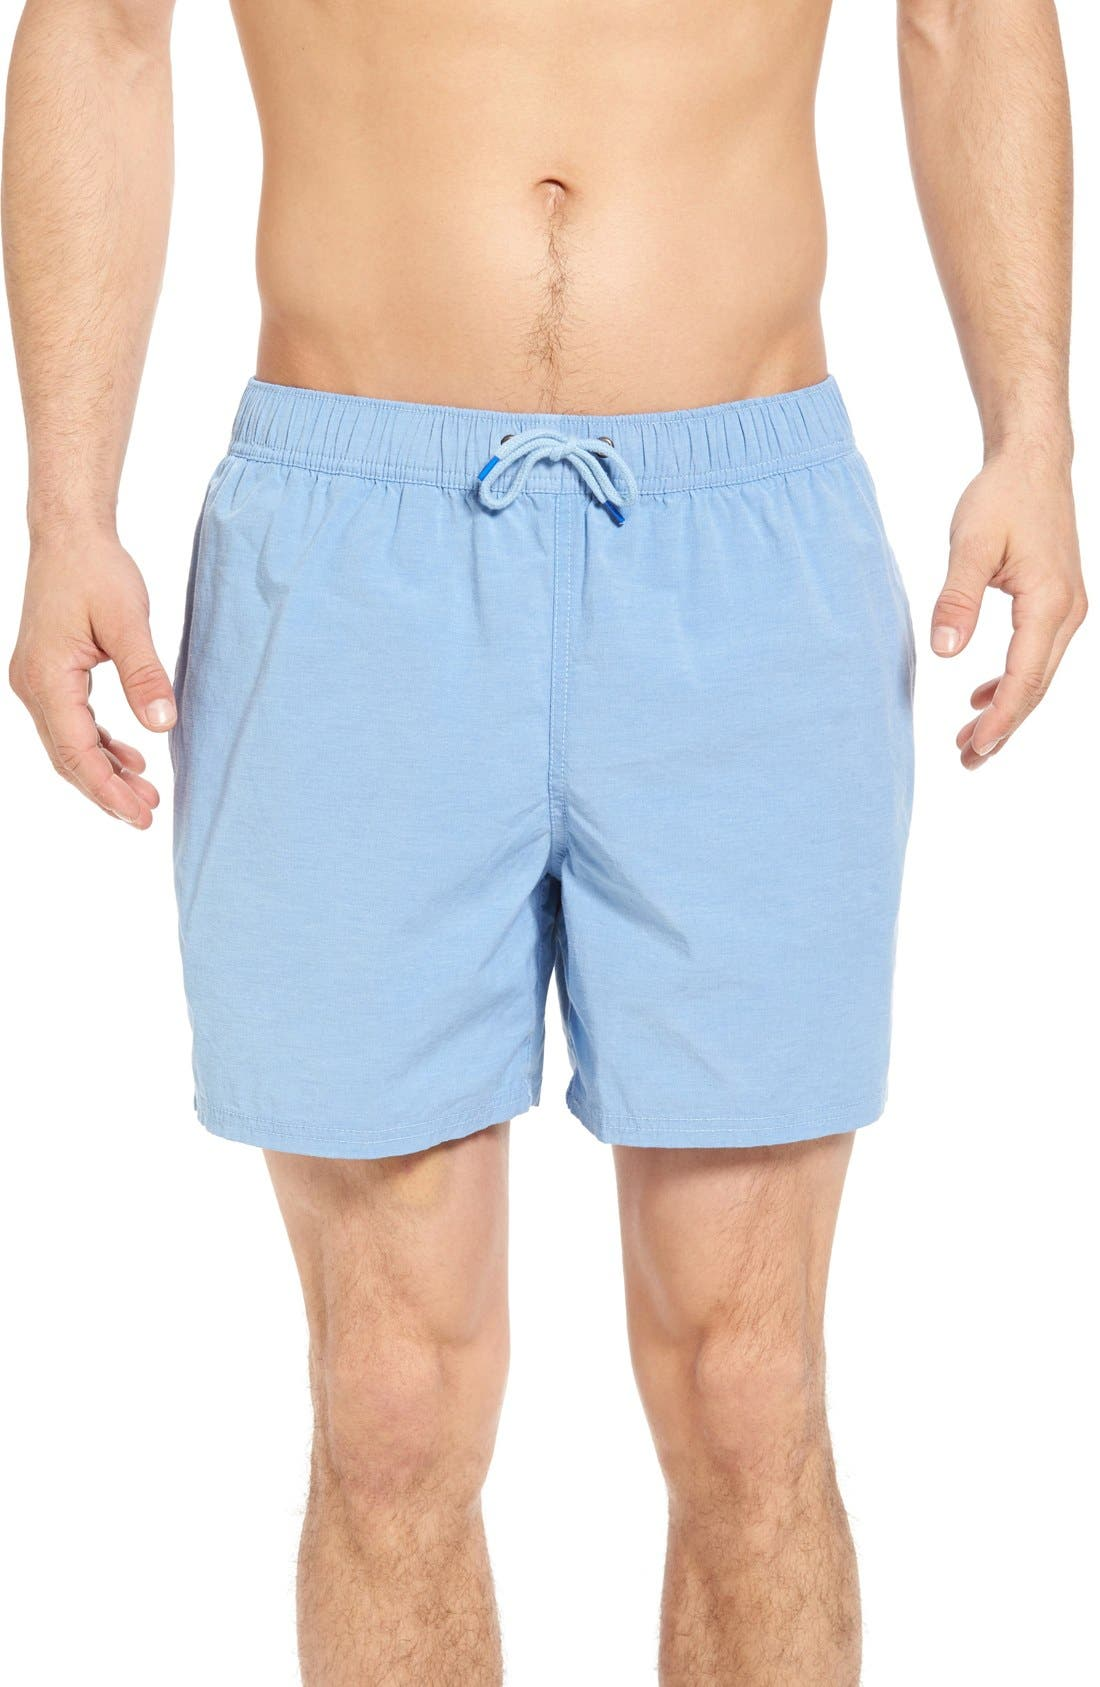 Waikiki Board Shorts,                             Main thumbnail 2, color,